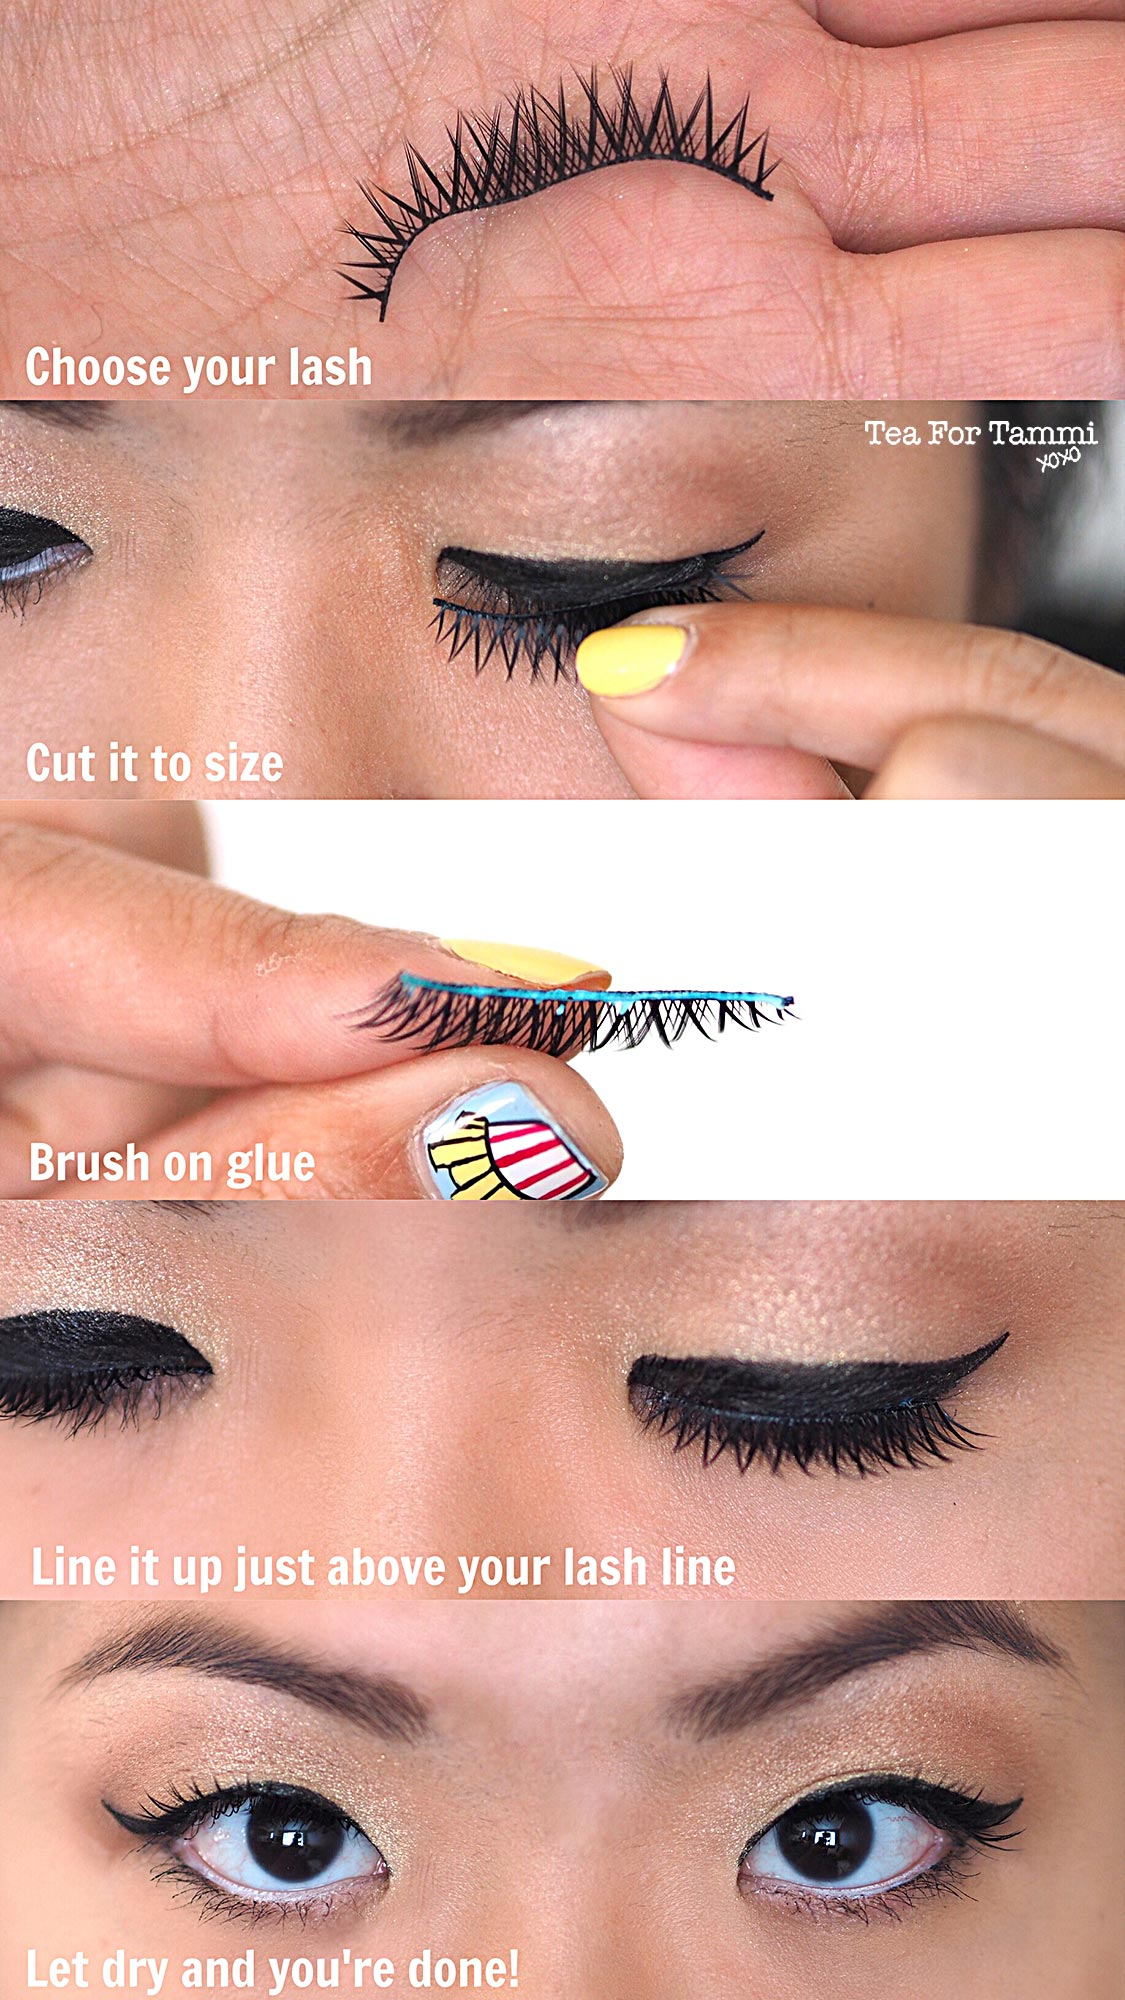 How To Apply Fake Eyelashes In 5 Easy Steps Tea For Tammi